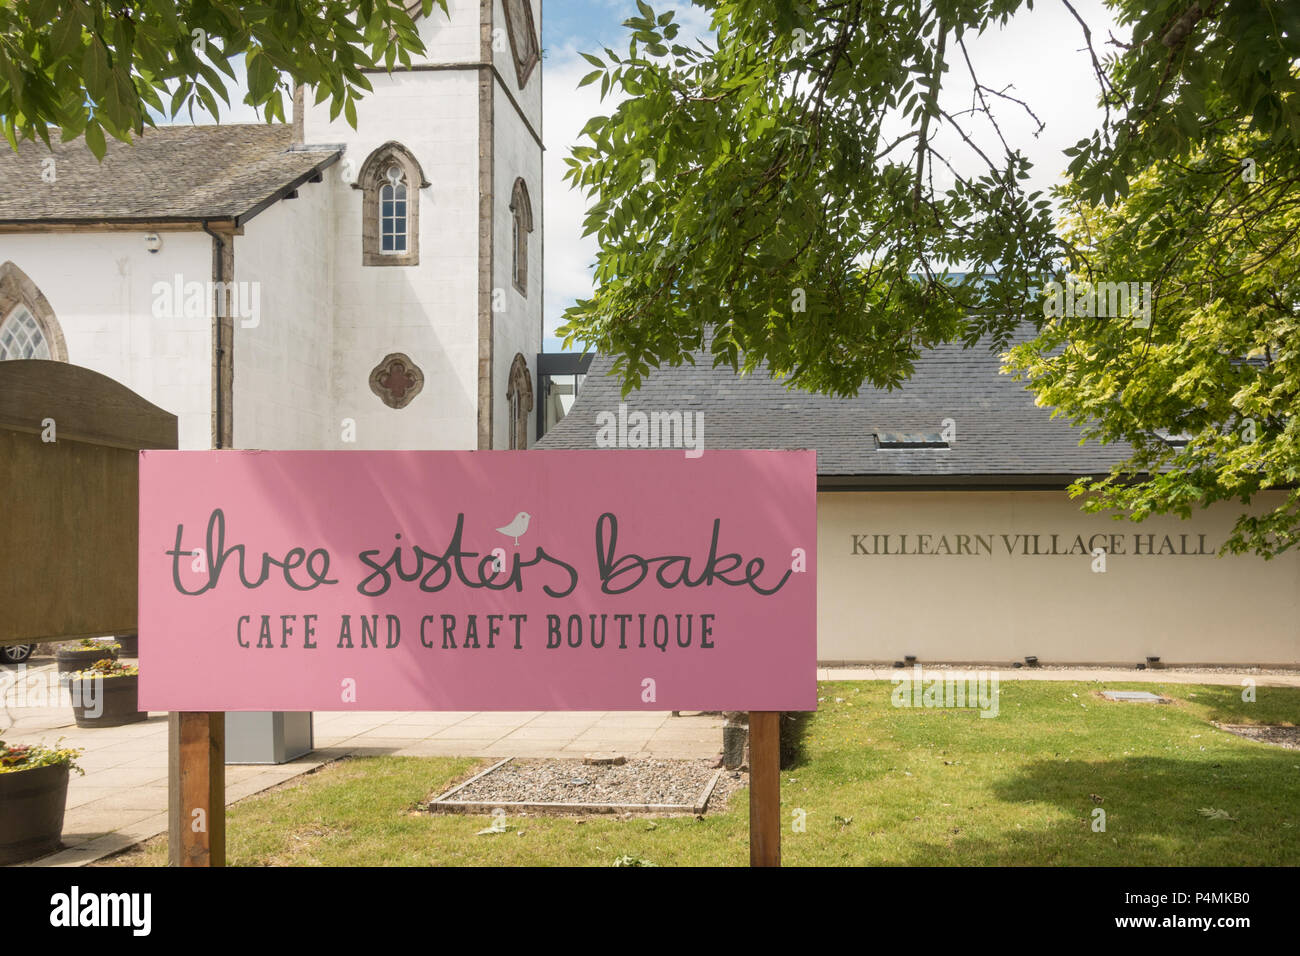 Trois Sœurs cuire cafe, Killearn, Stirlingshire, Scotland, UK Photo Stock